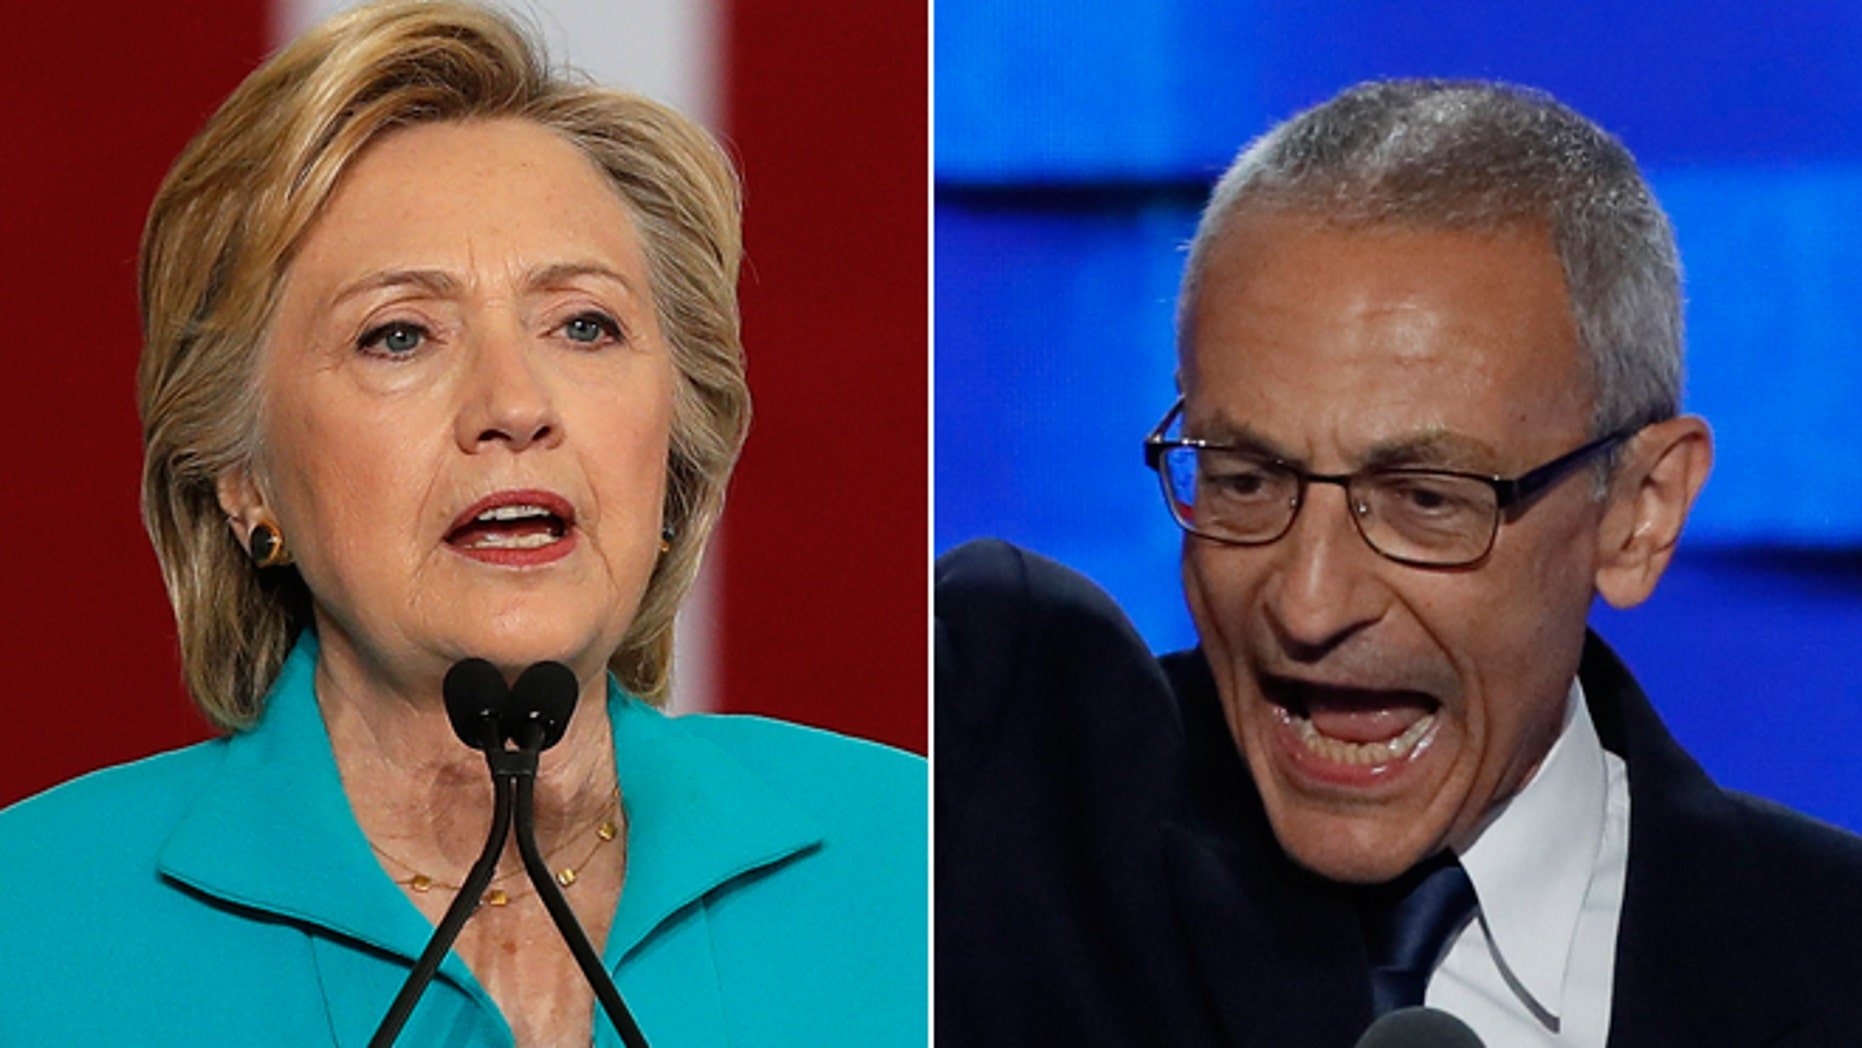 This composite image shows Hillary Clinton, left, and Clinton campaign Chair John Podesta, right.